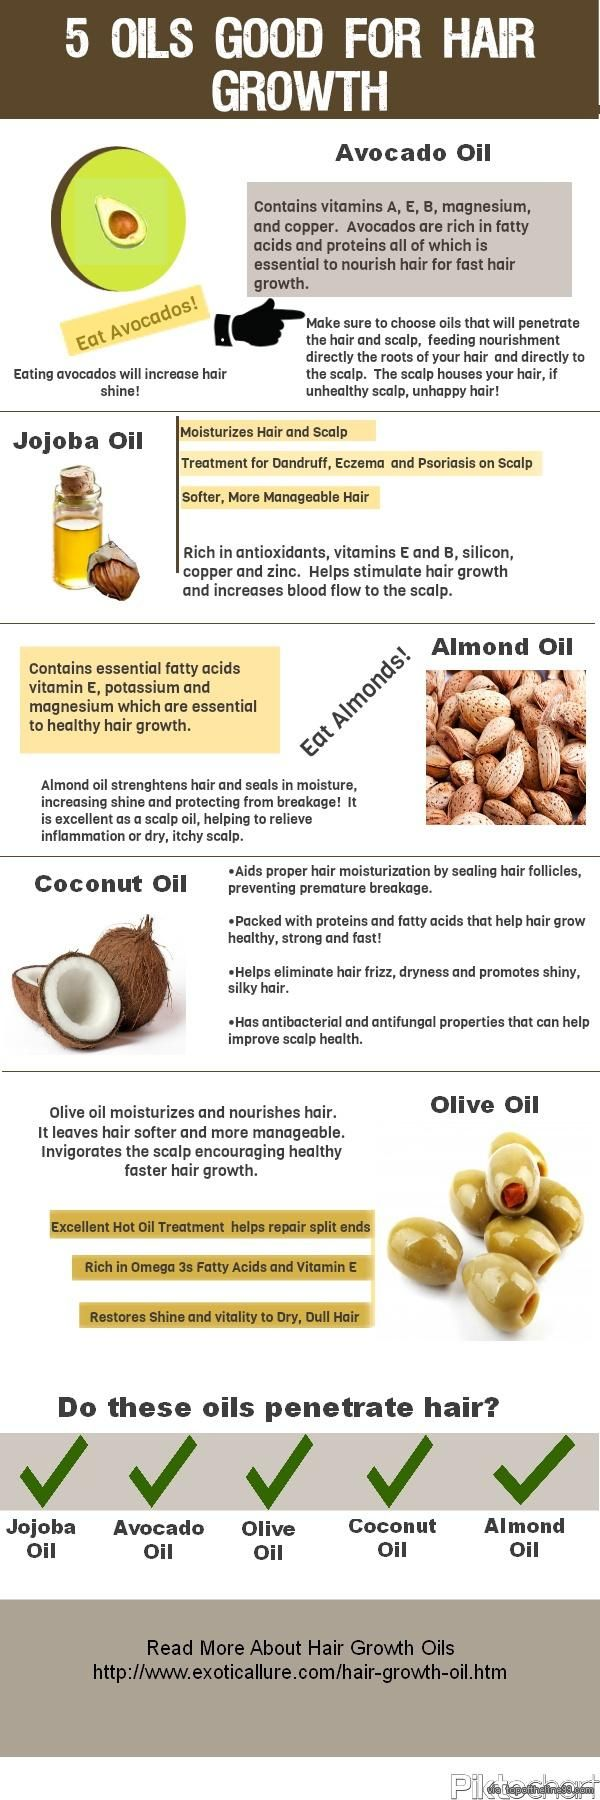 Oils Good for Hair Growth. Try a hot oil treatment with Olive oil for softer, healthier looking hair!